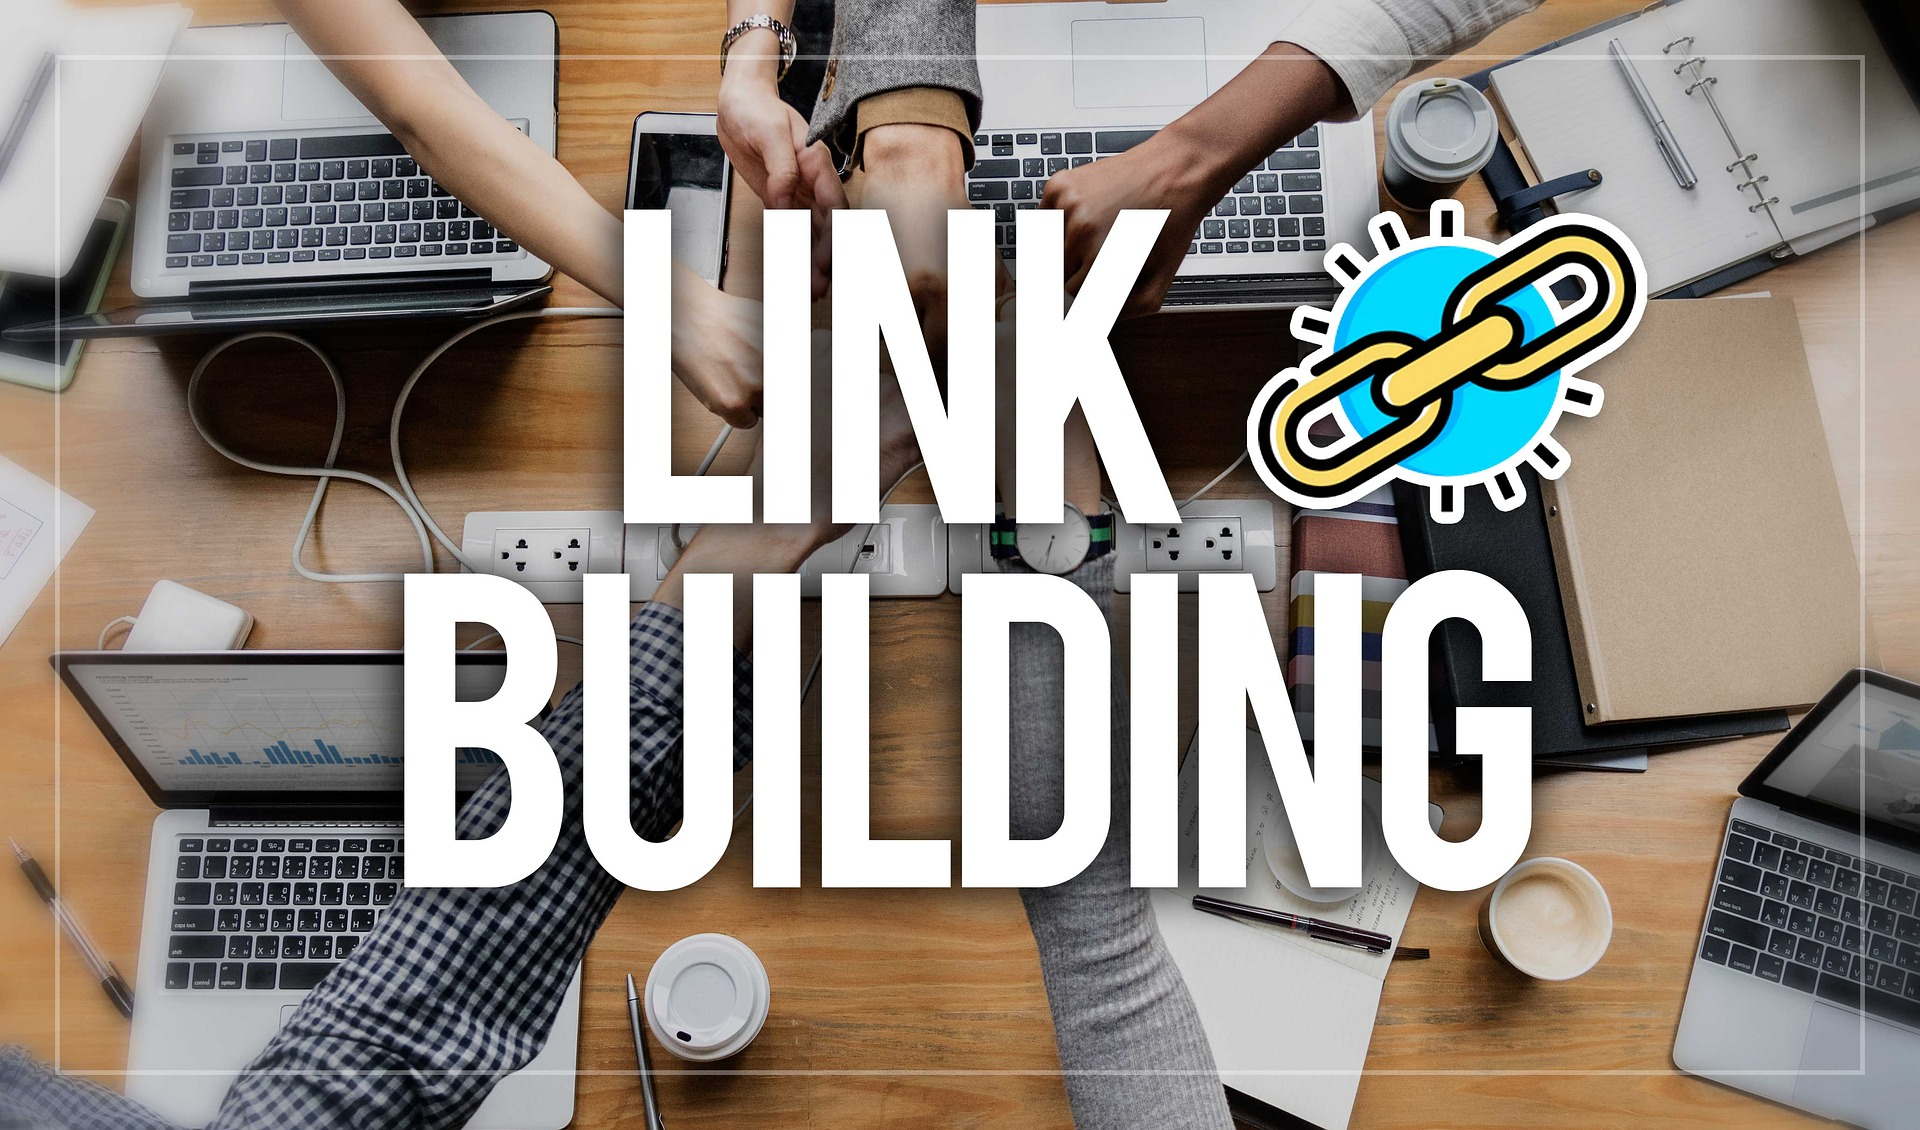 I will share your website/blog to 1,500+ different places